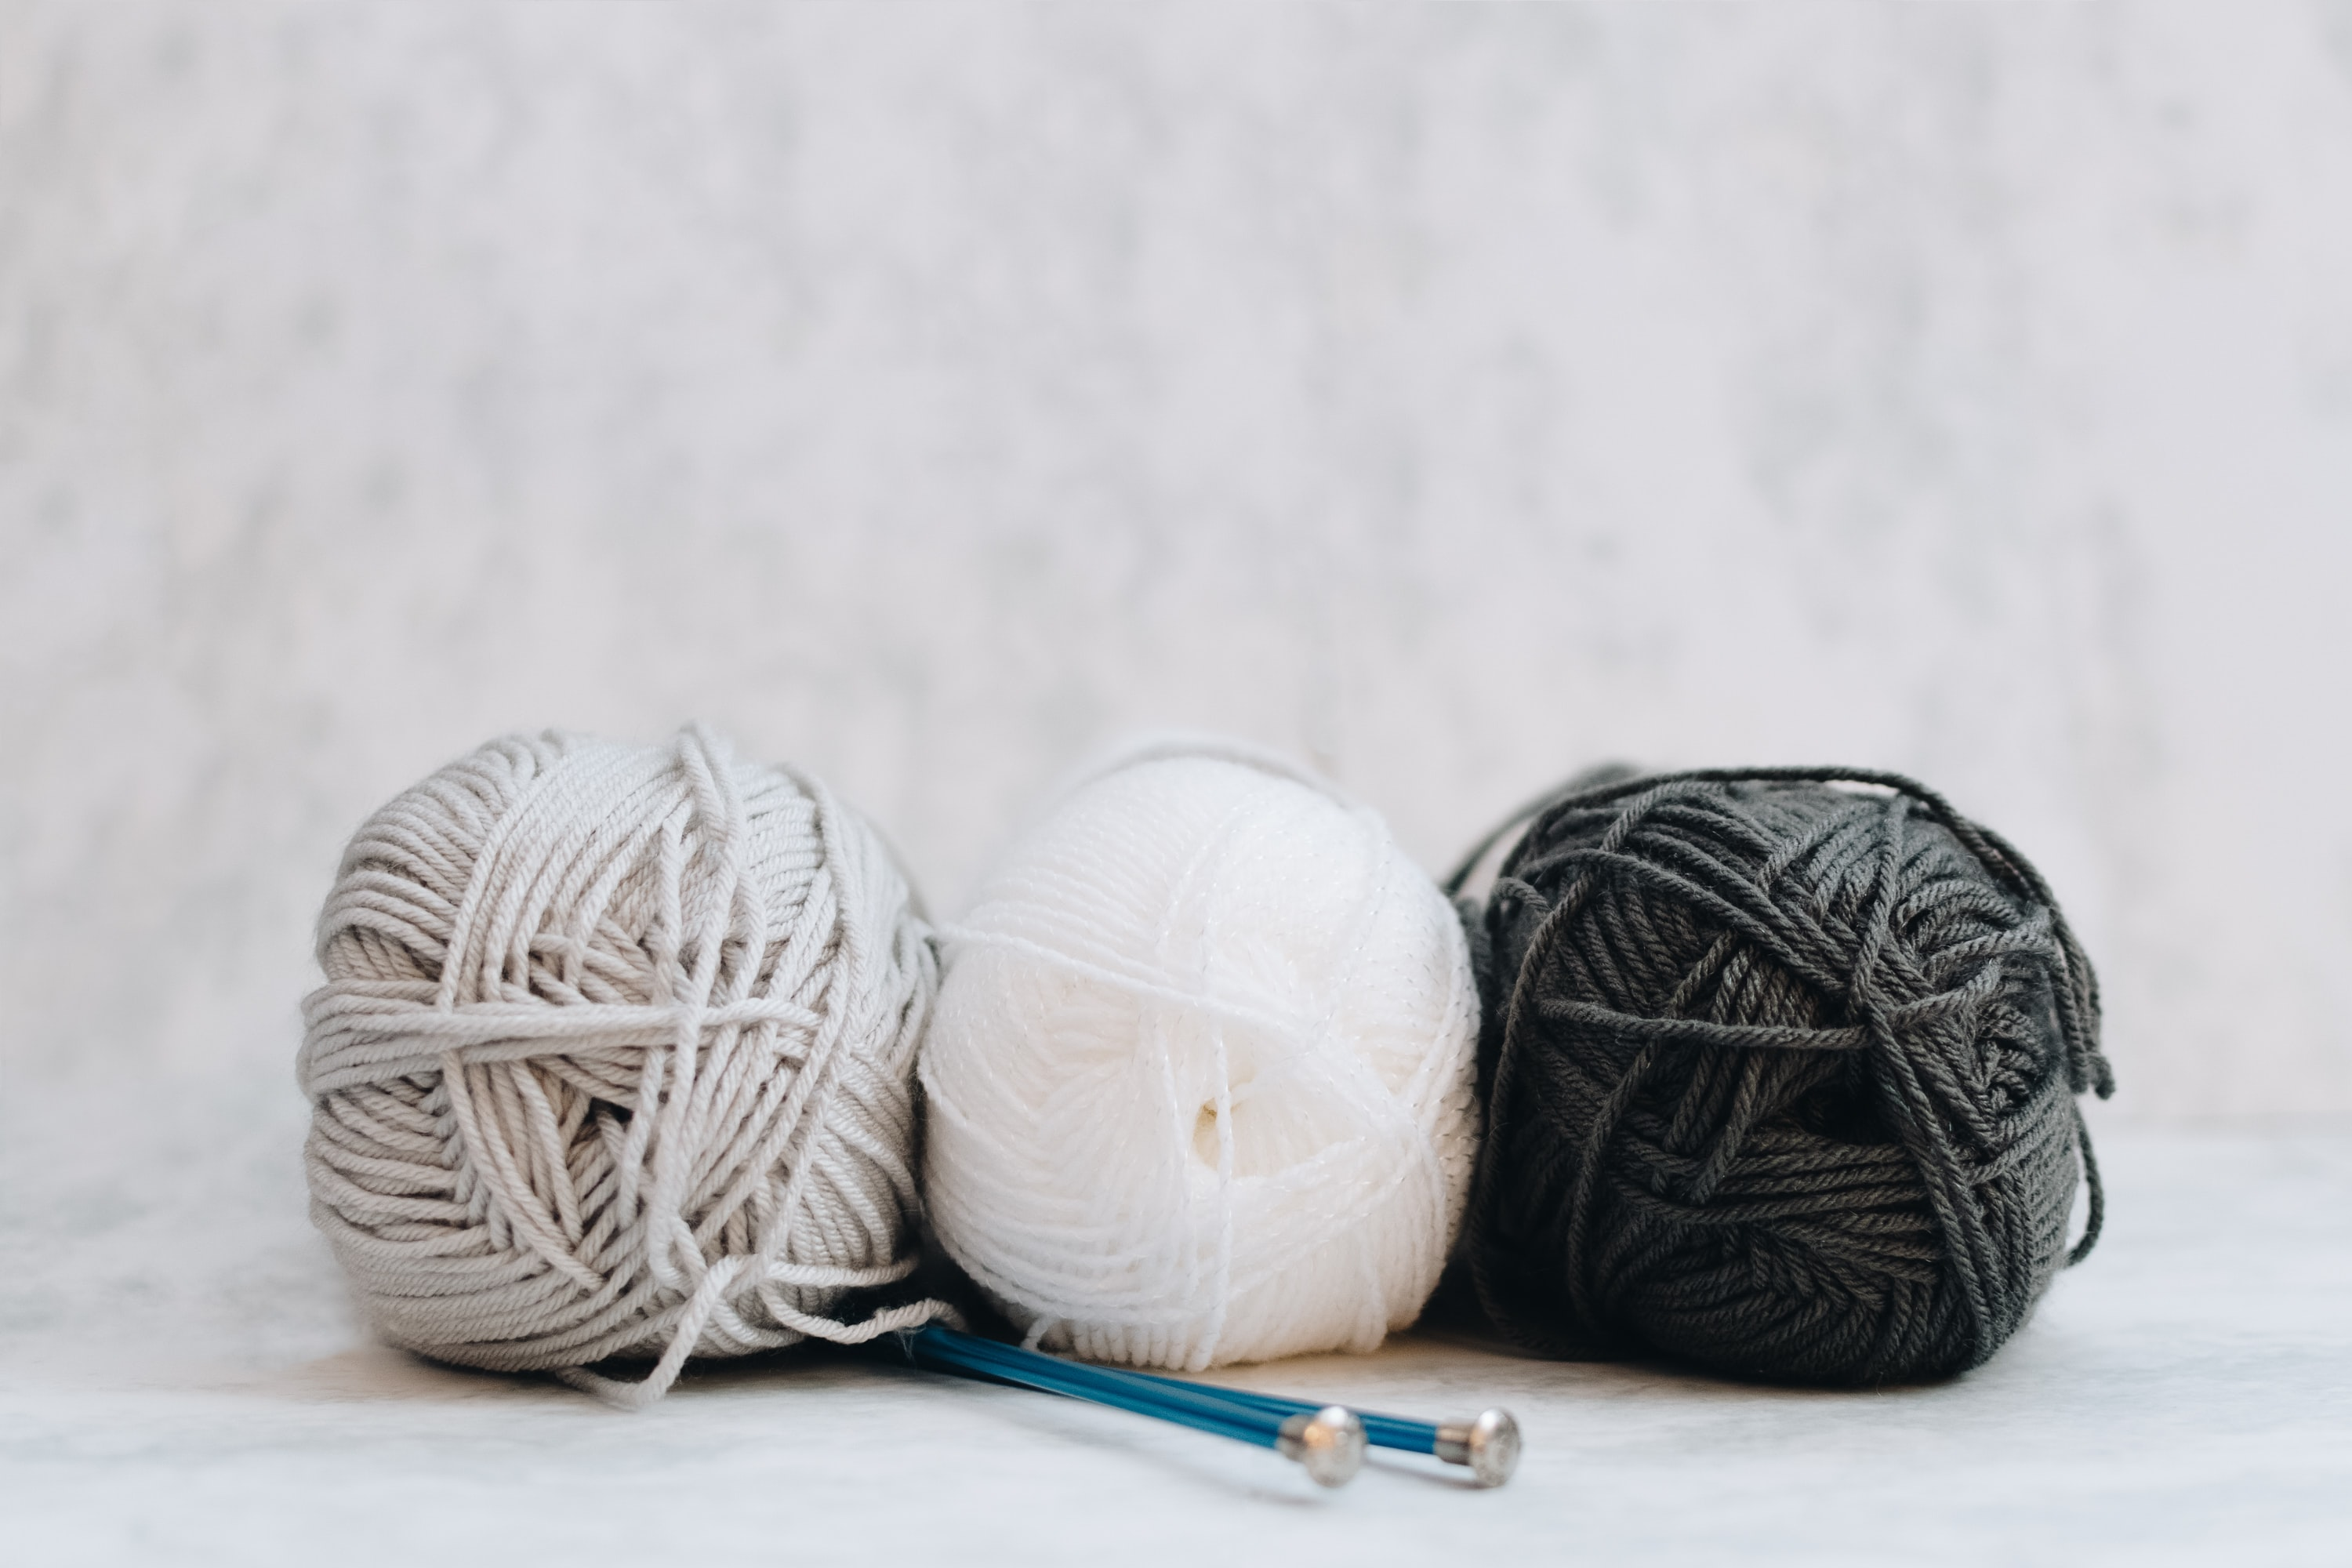 white, gray, and black yarns